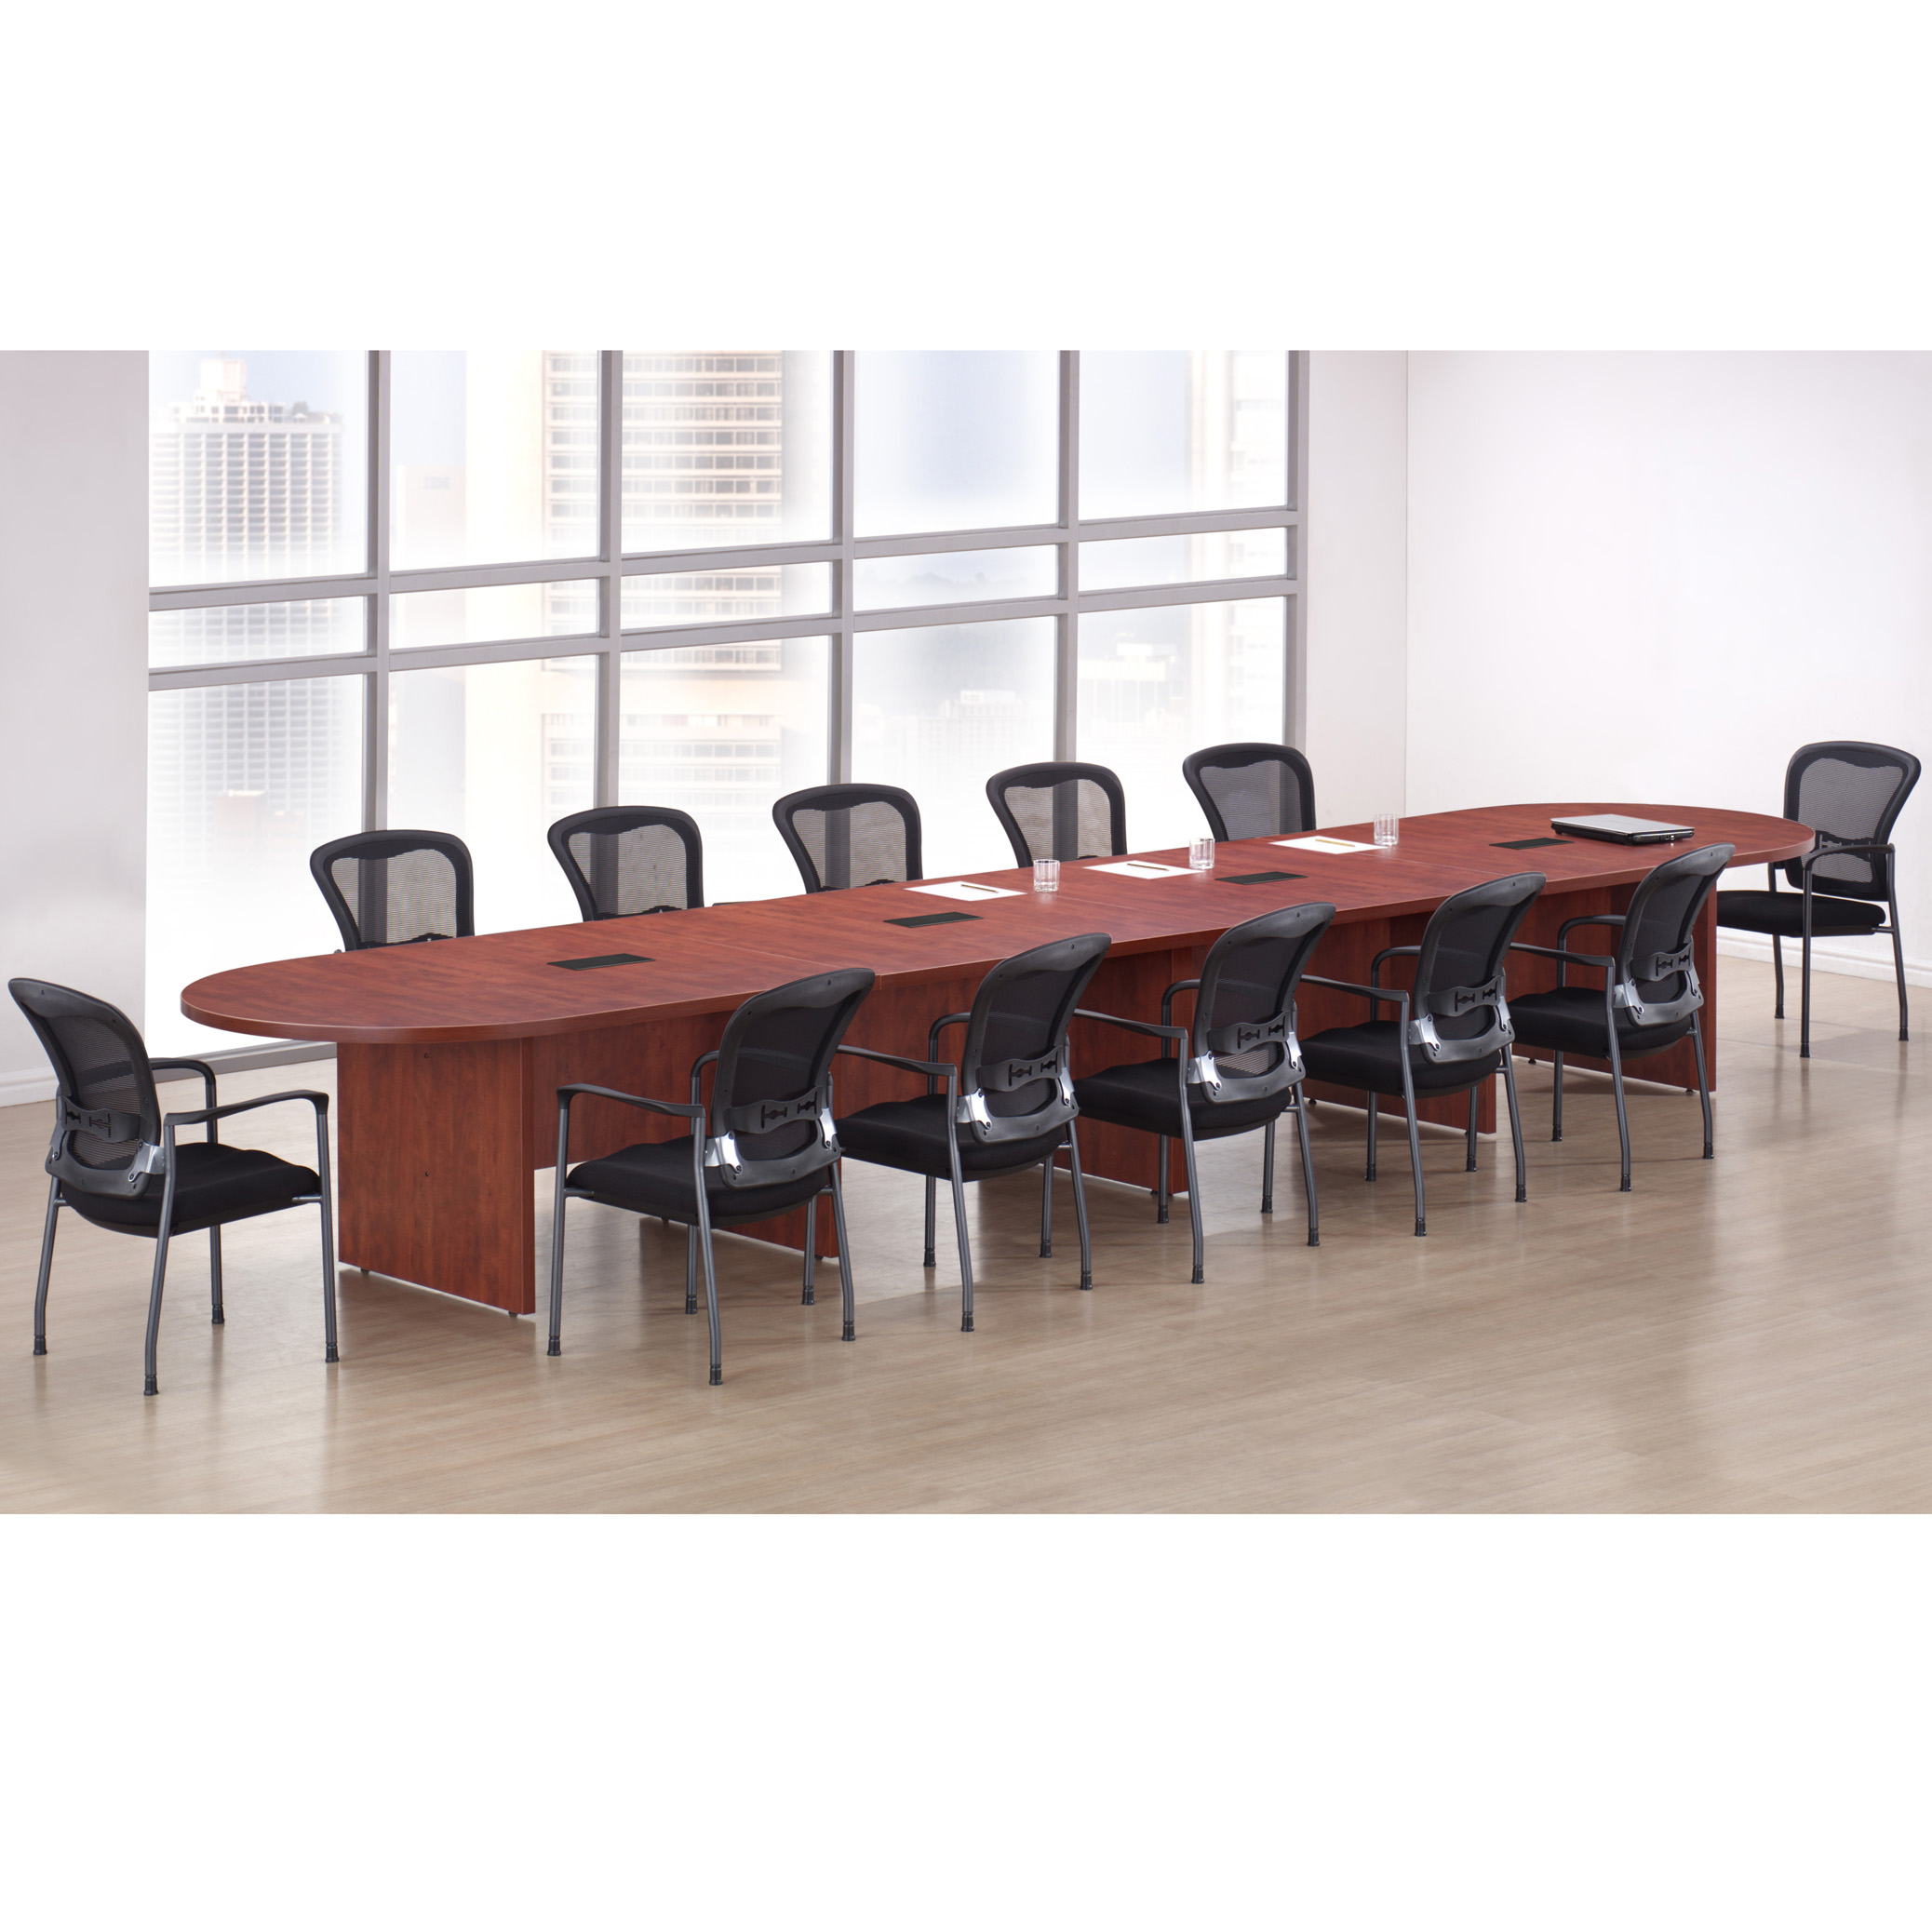 Performance Conference Table HON Arthur P OHara Inc - Hon racetrack conference table